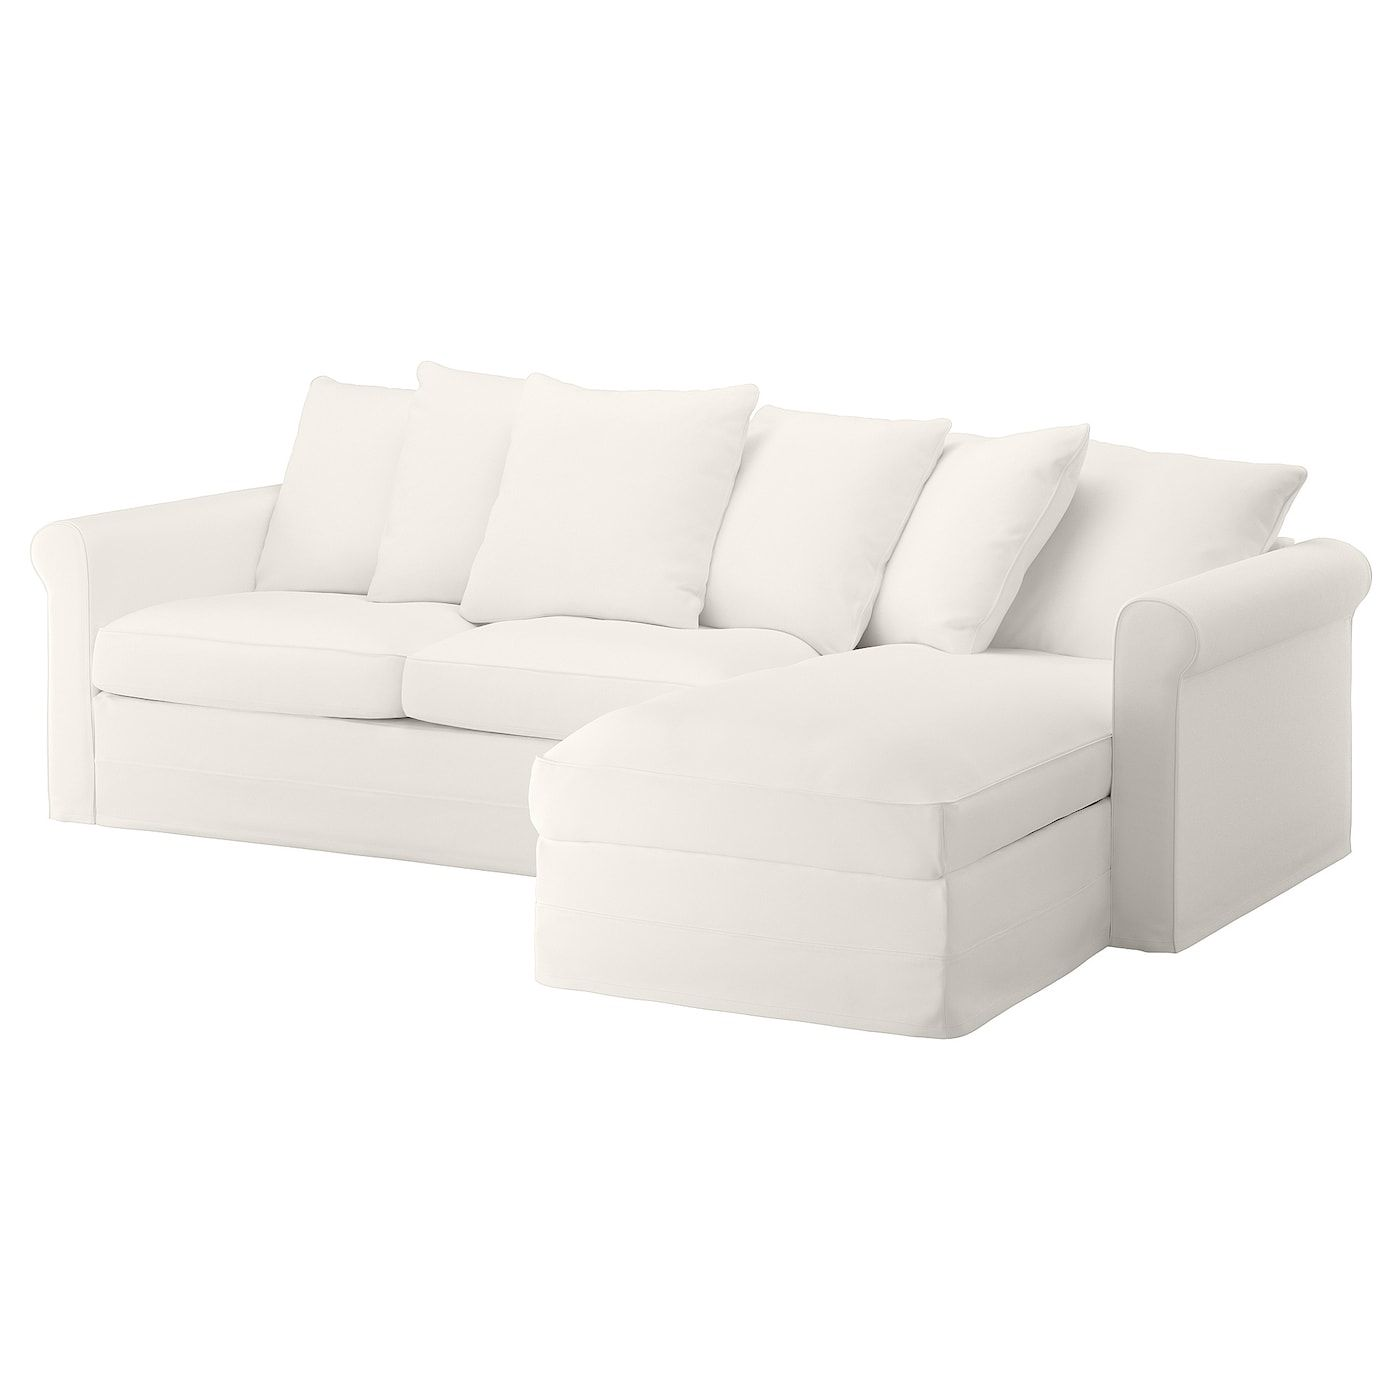 Ikea Chaise Longue Slaapbank.Gronlid 3 Zits Slaapbank In 2020 Sofa Bed With Chaise Sofa